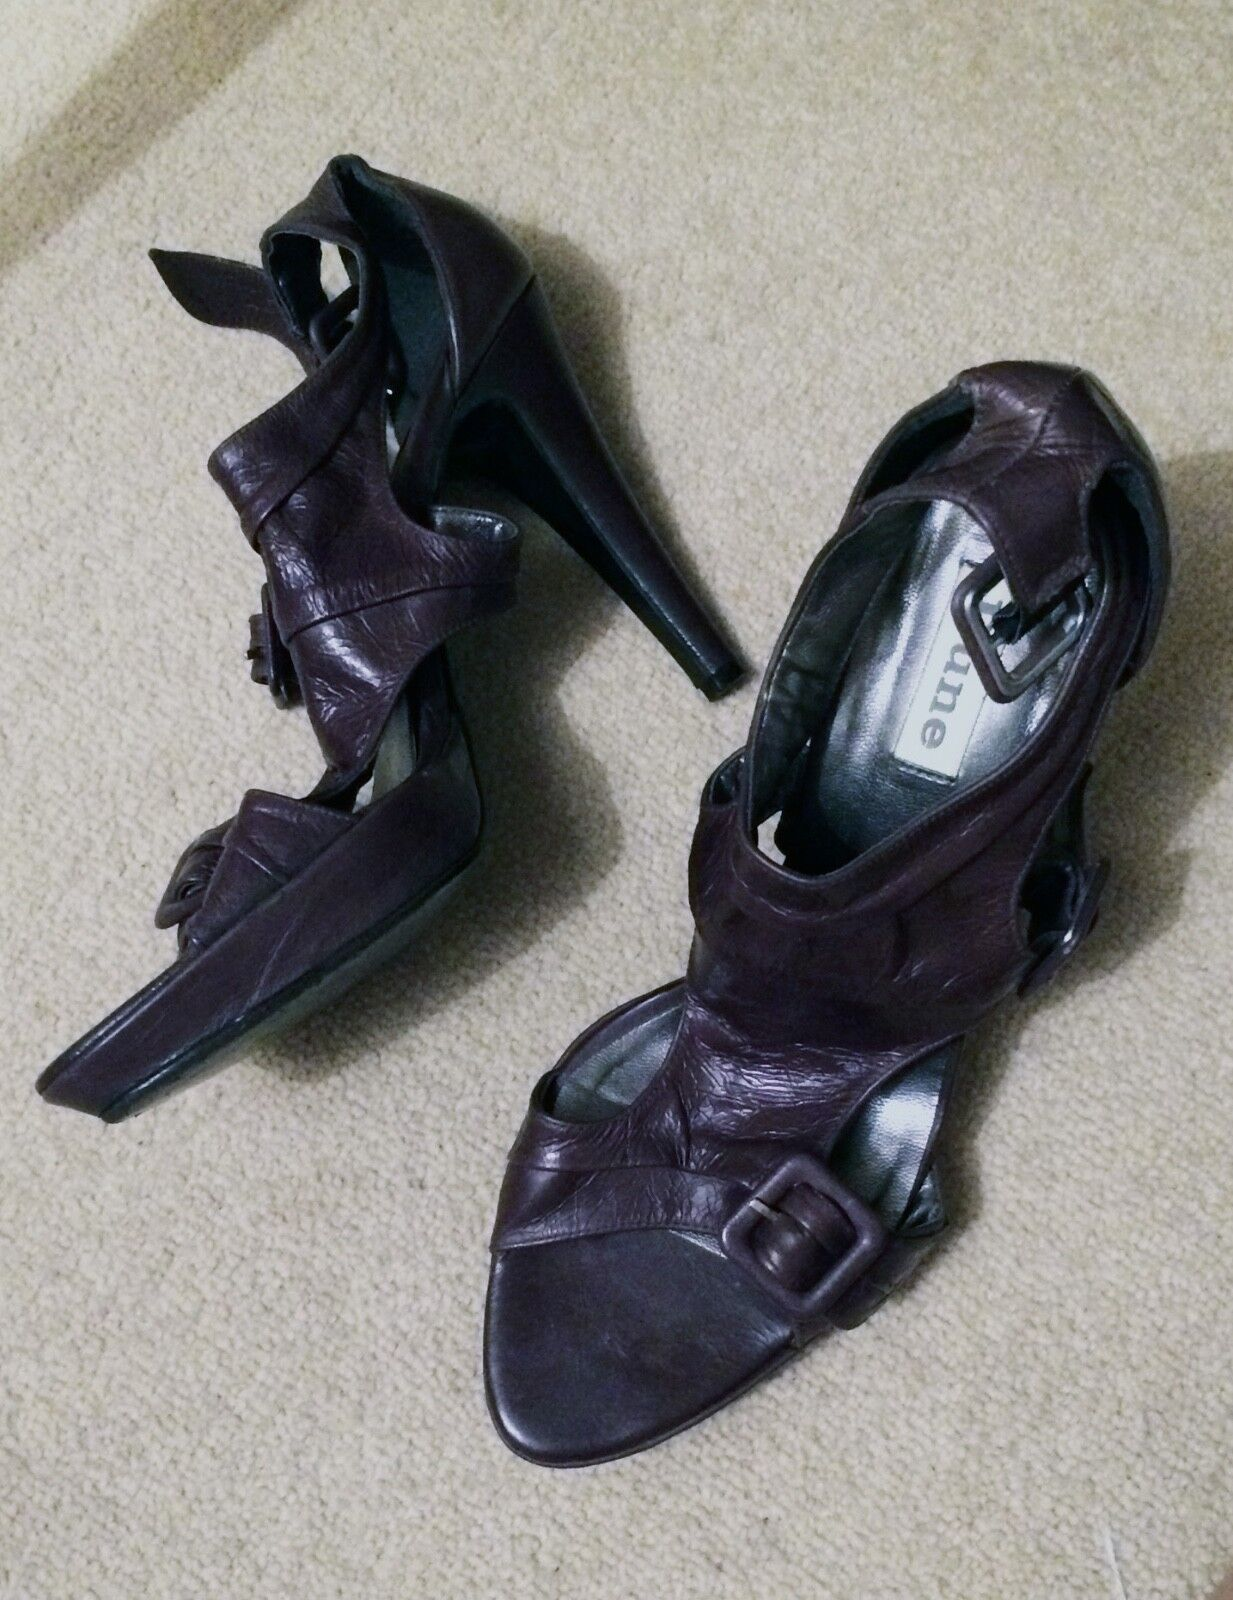 DUNE Charcoal Strappy High Heel Sandals -size eu 39   uk 6 - excellent condition